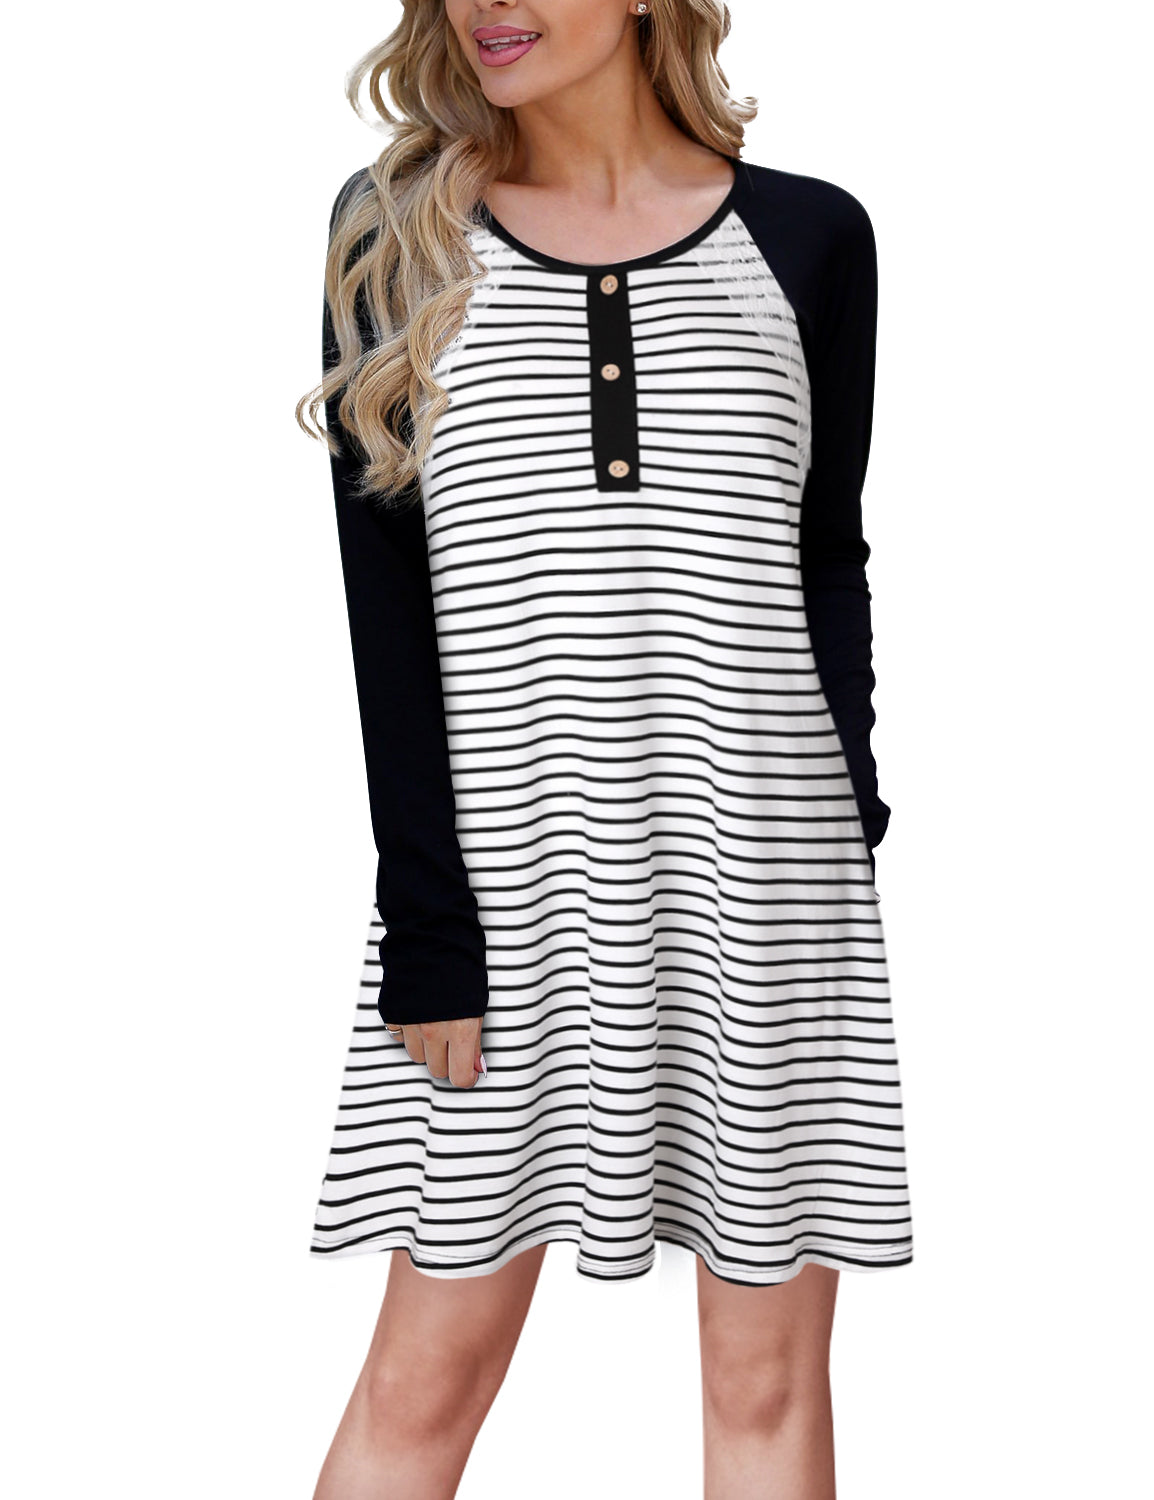 Vintage Lace Striped Contrast Swing Dress - Blooming Jelly